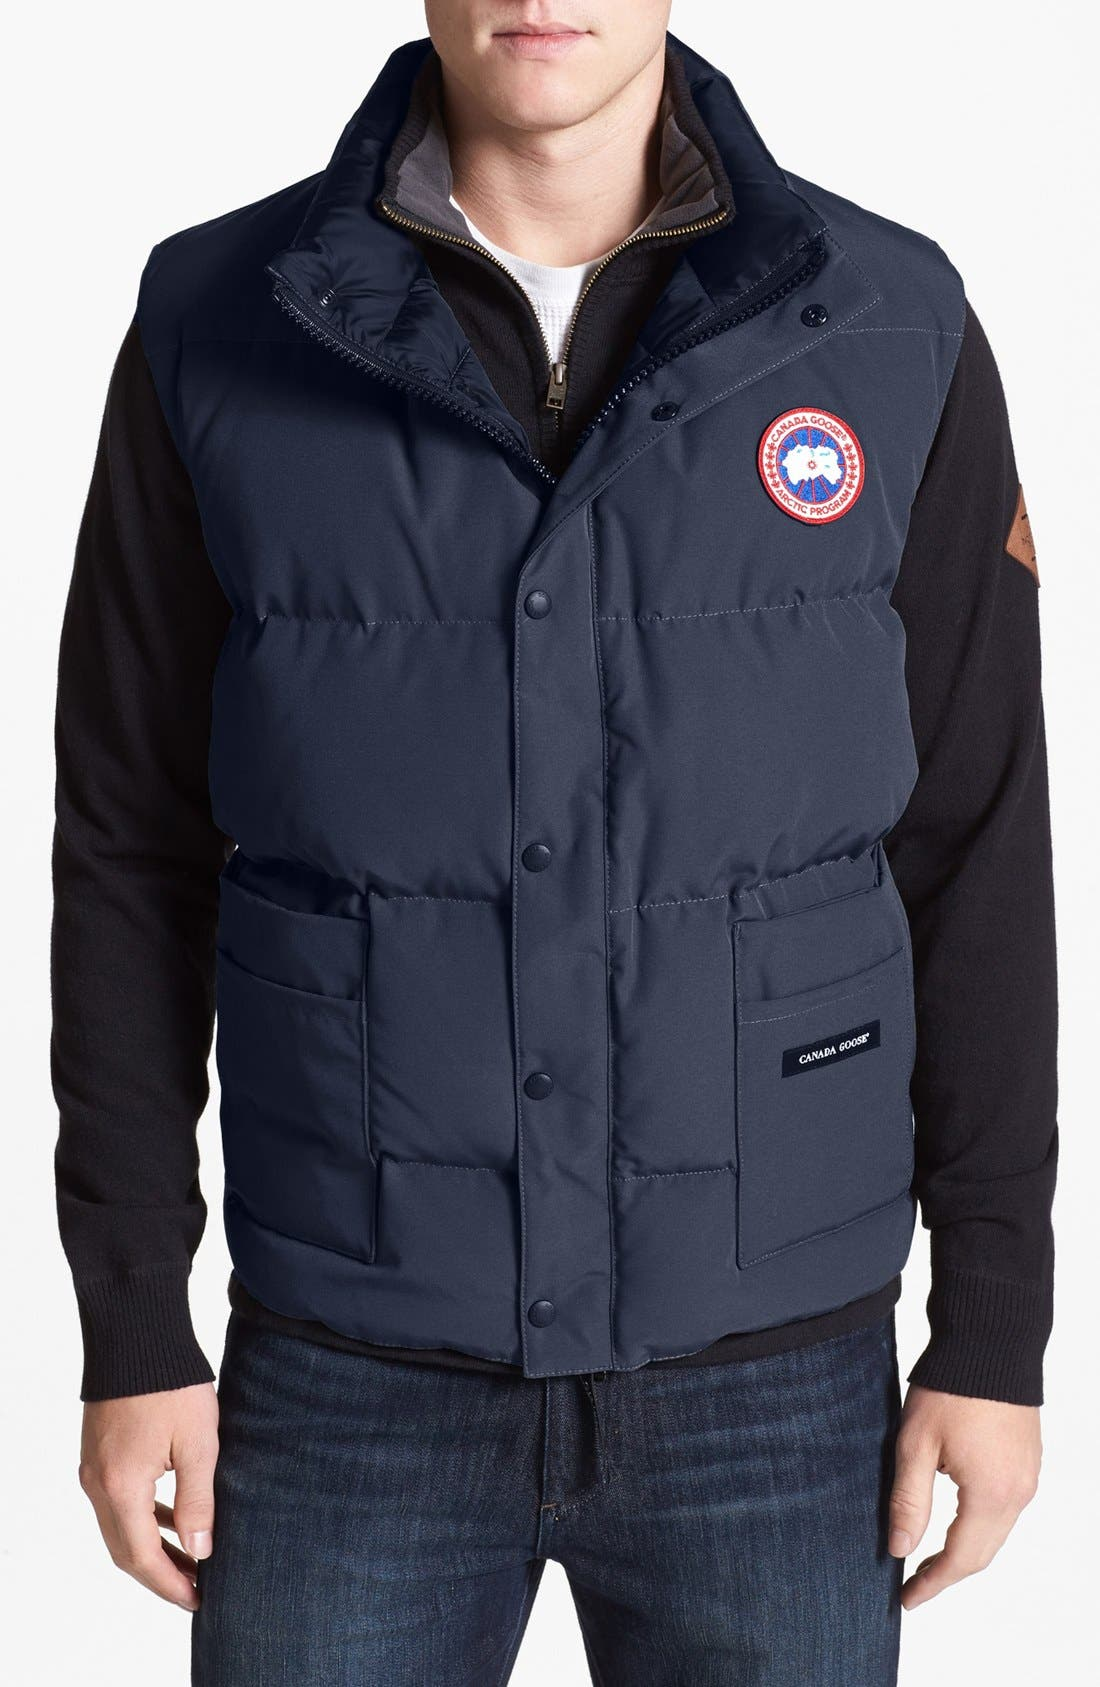 Alternate Image 1 Selected - Canada Goose 'Freestyle' Water Resistant Regular Fit Down Vest